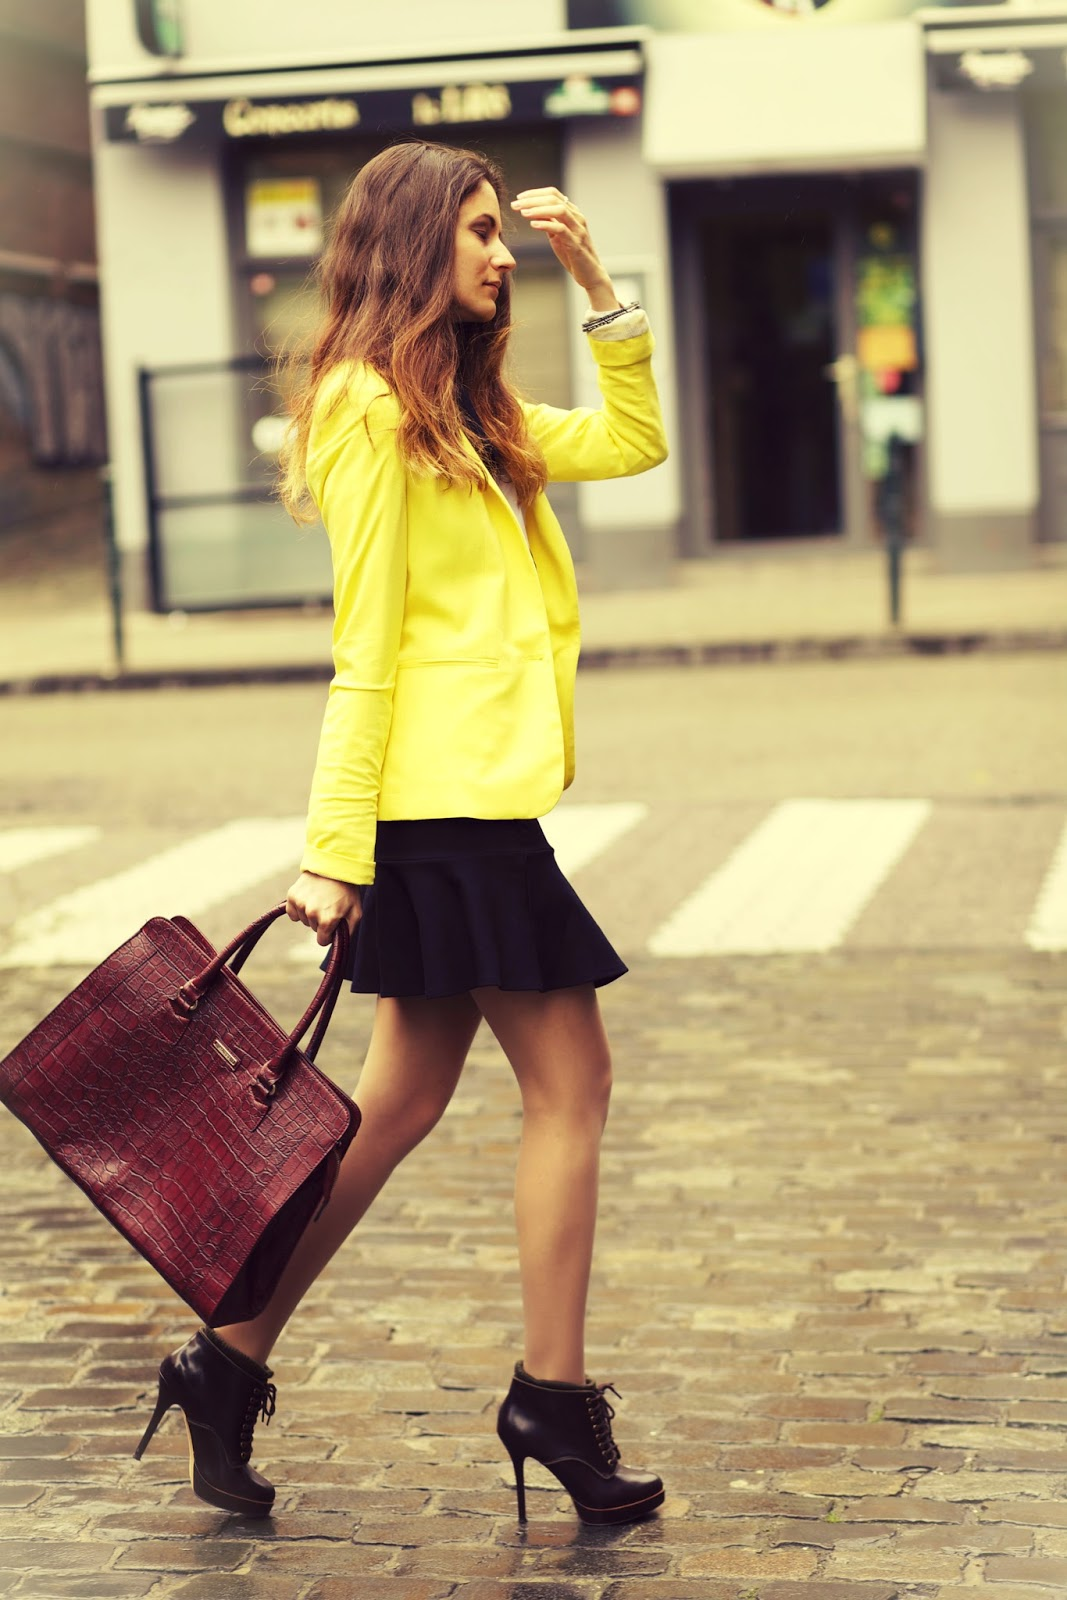 ootd: serena van der woodsen inspired outfit   from brussels, with